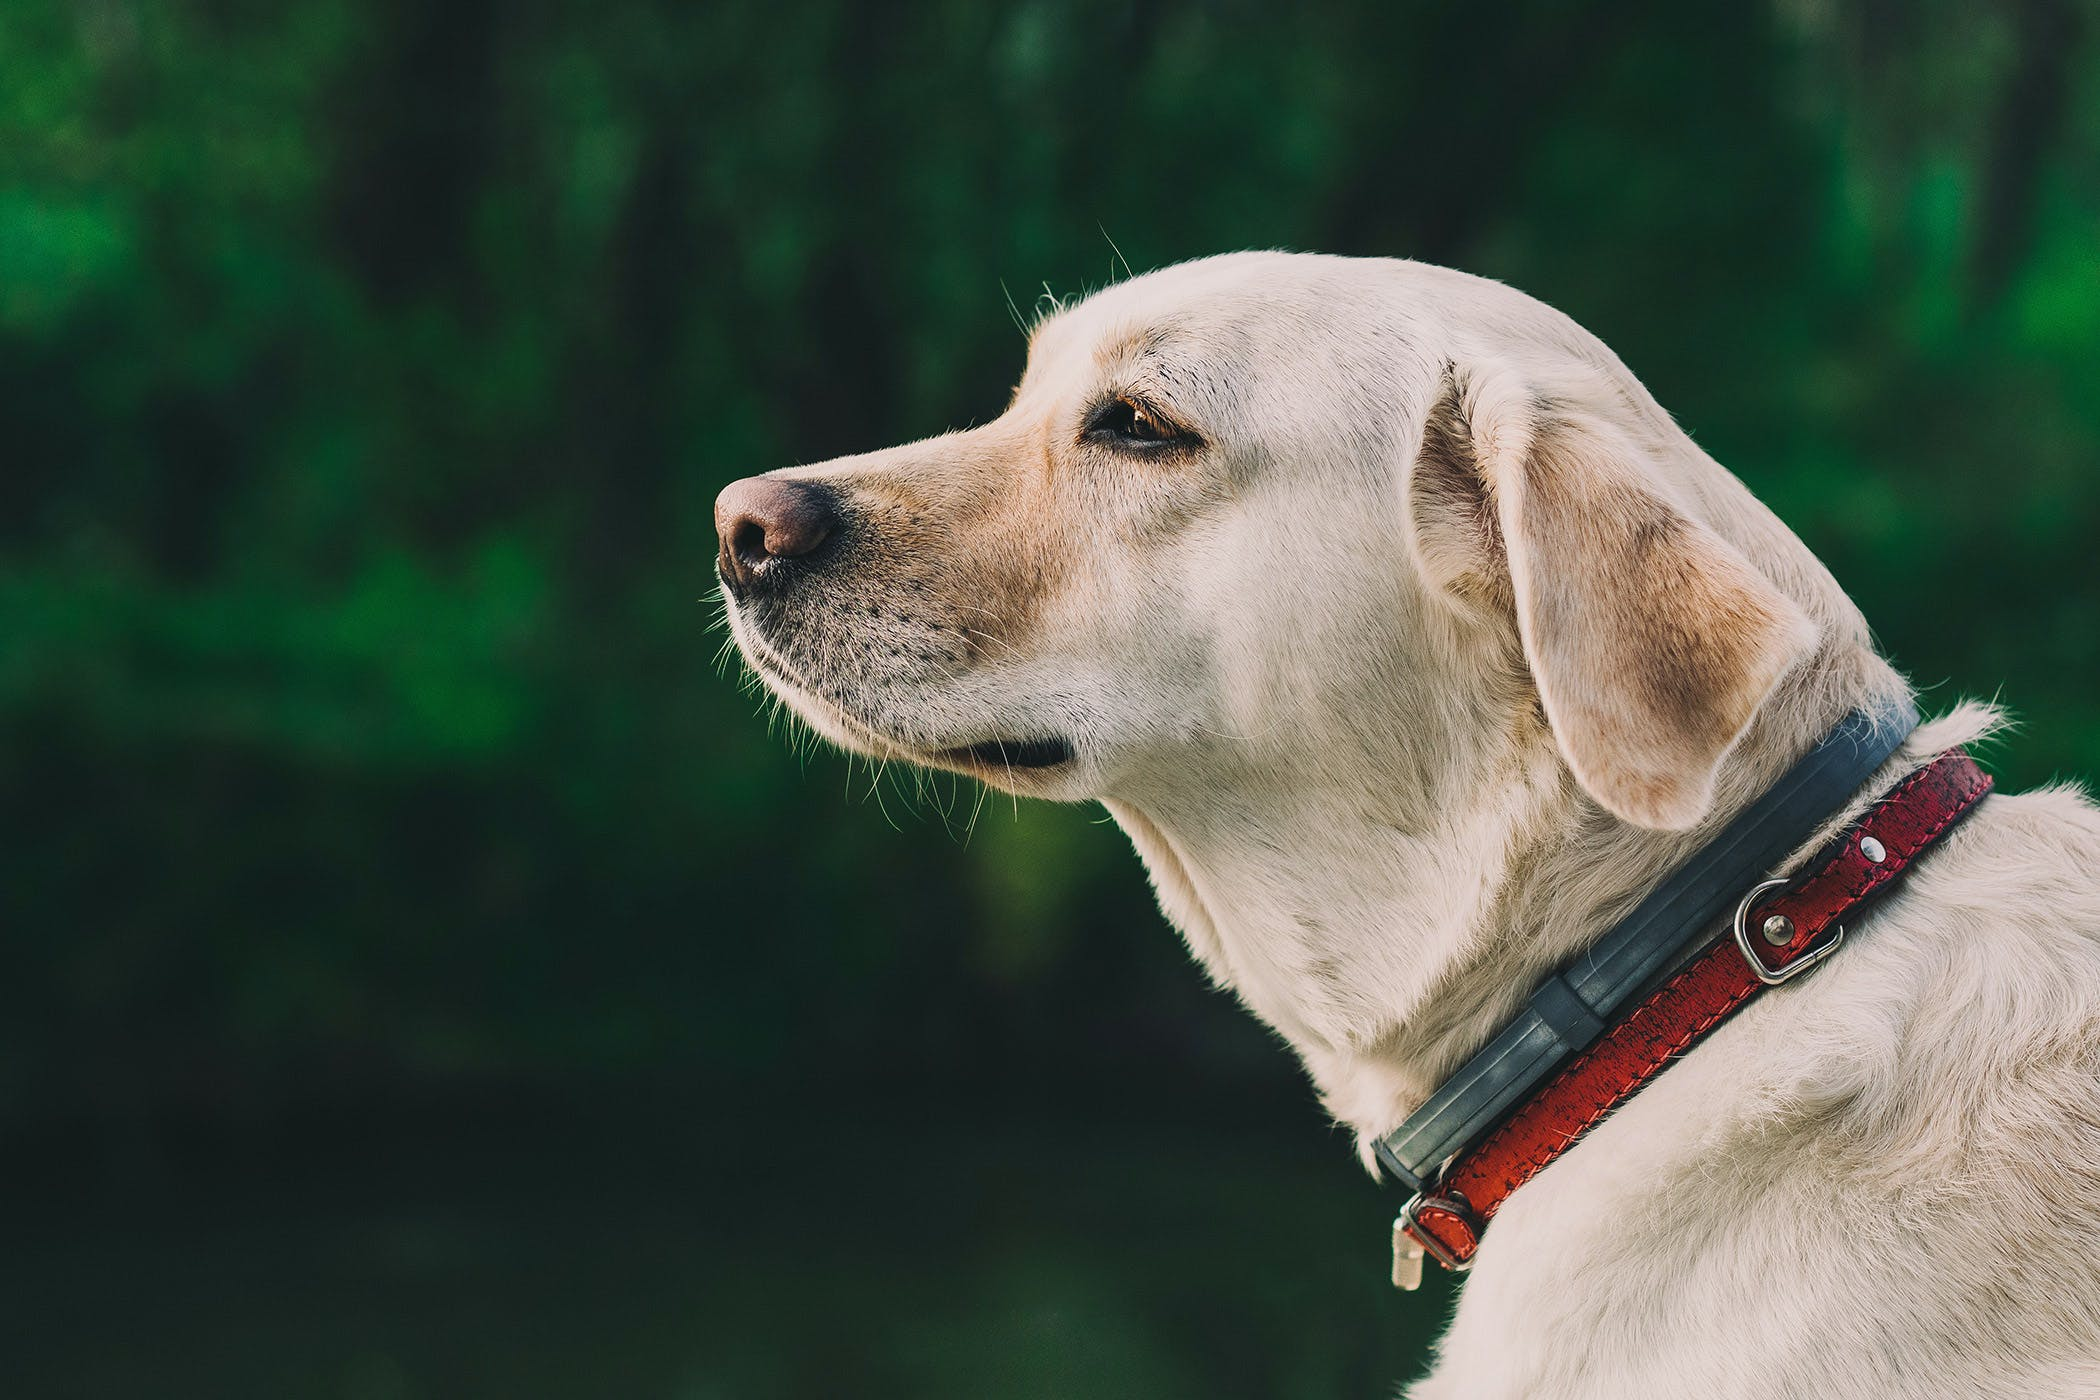 basal cell tumor in dogs symptoms causes diagnosis